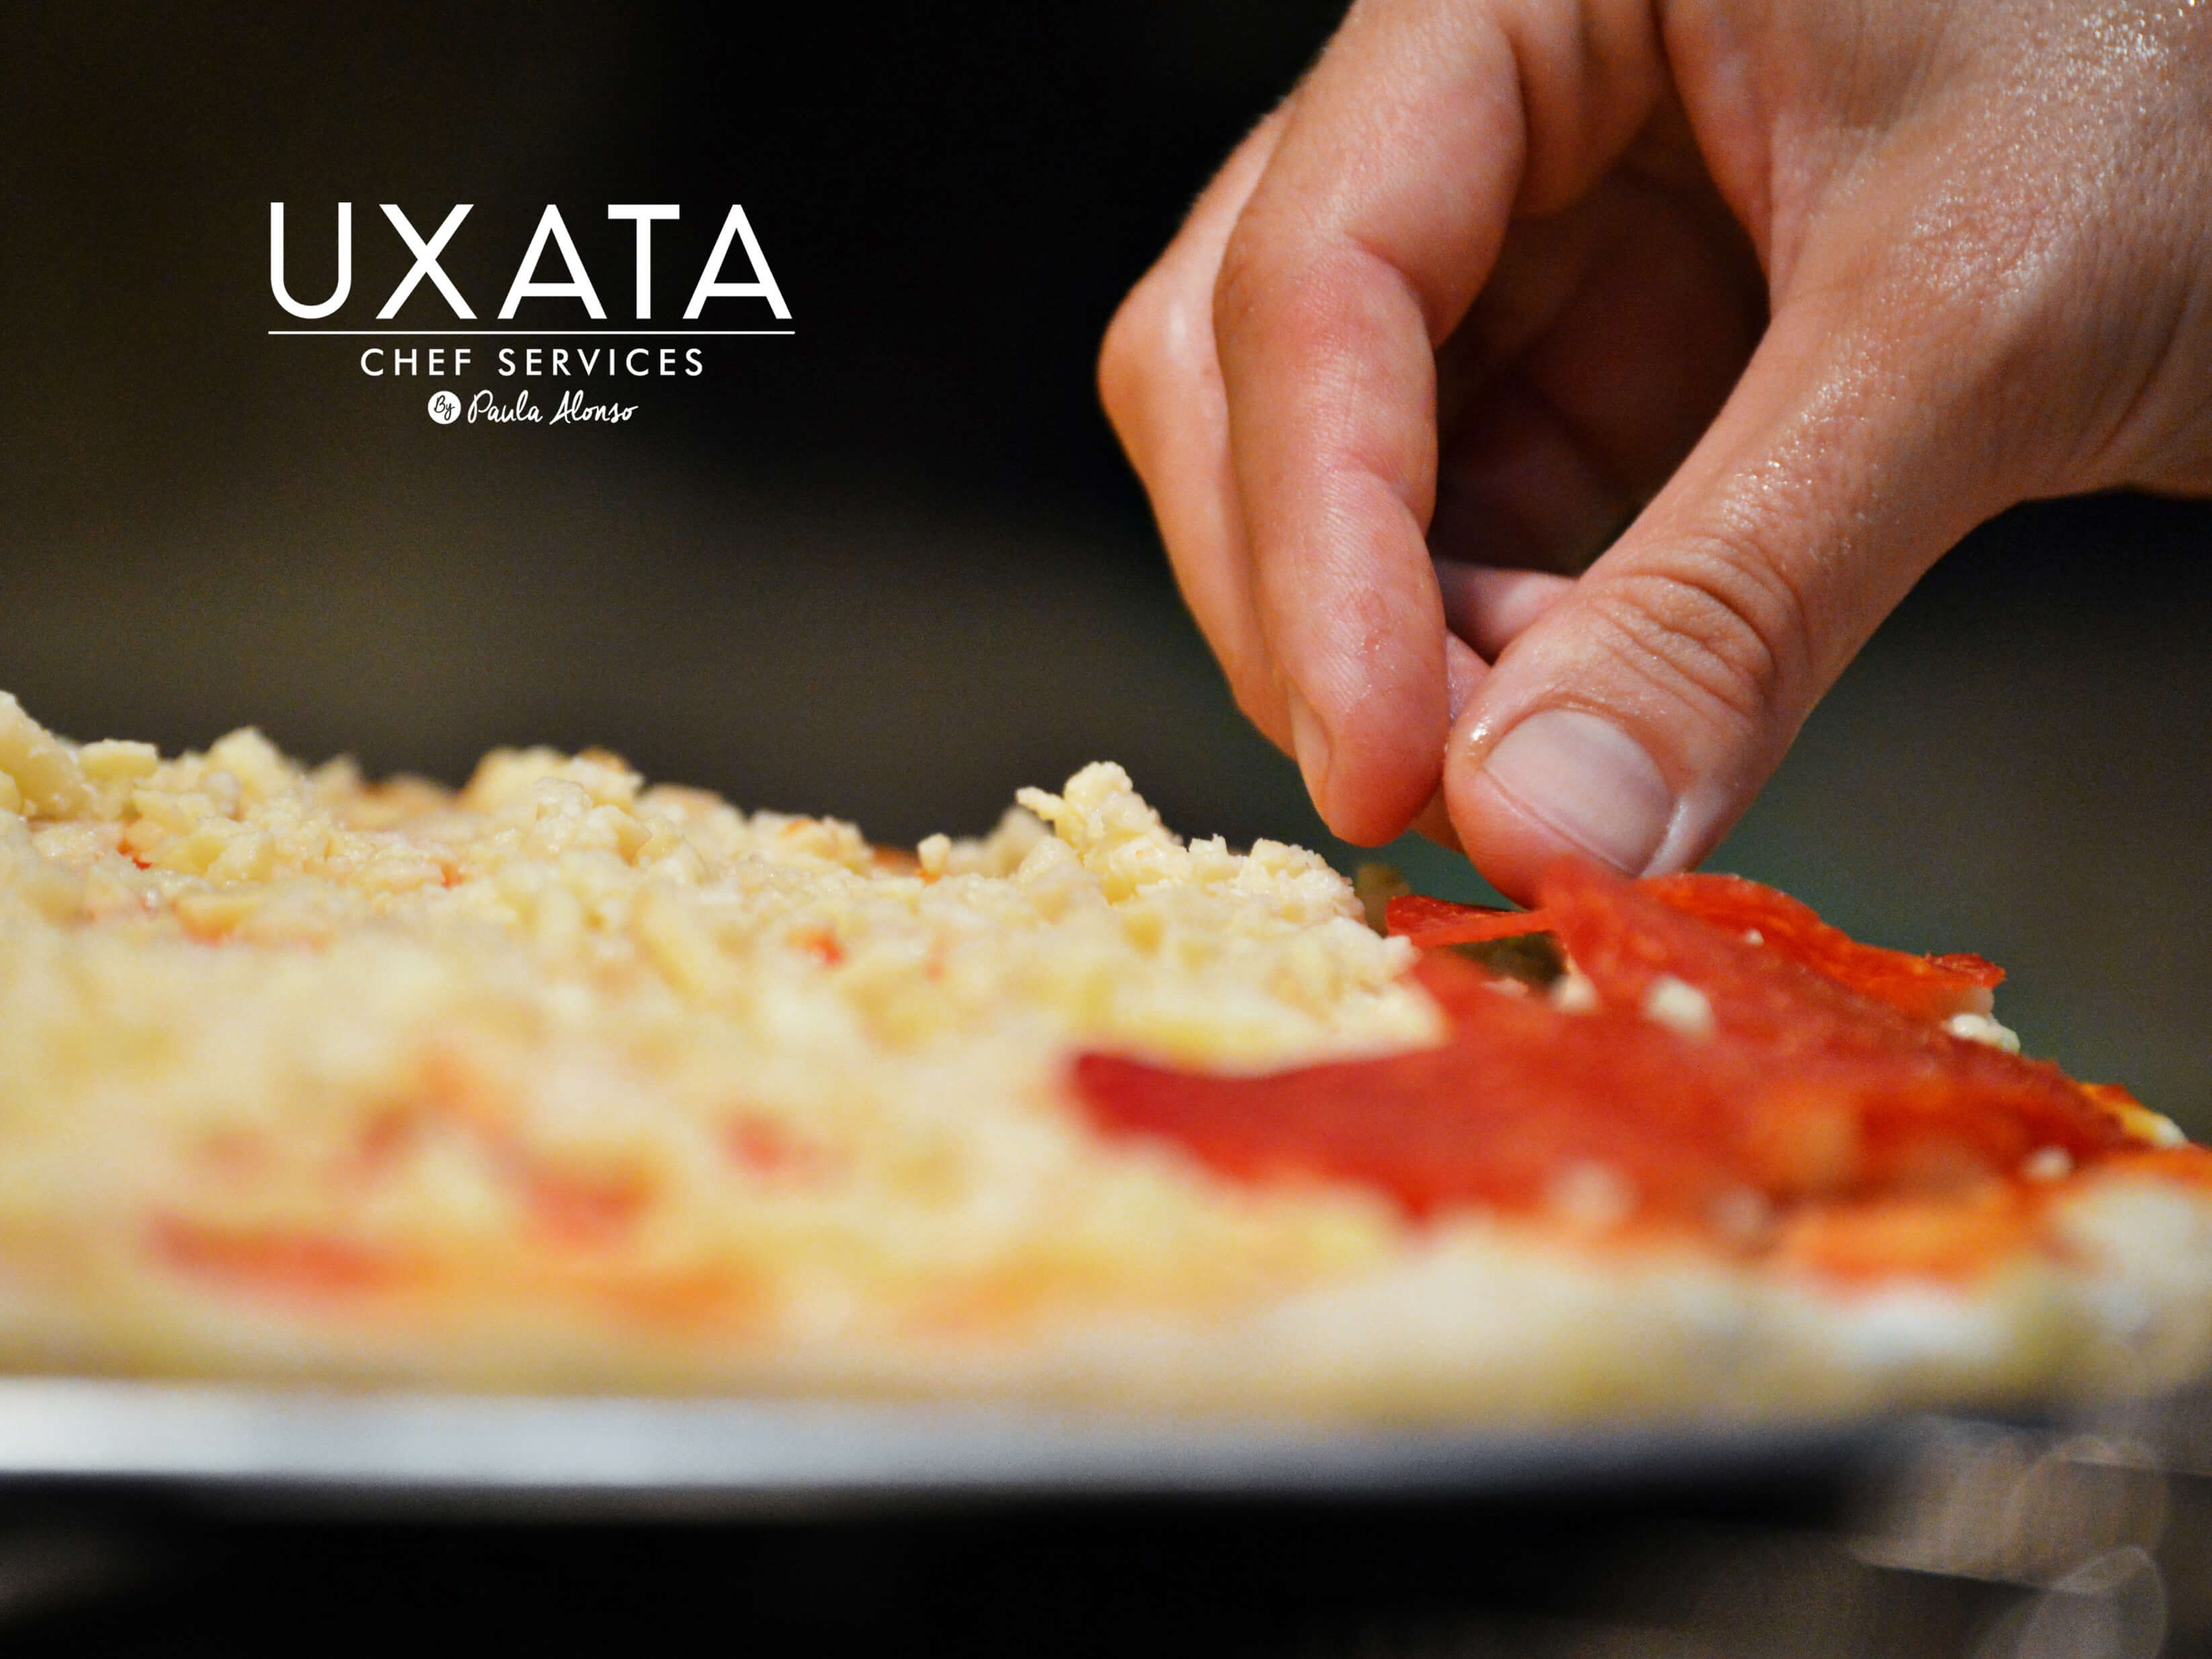 UXATA Private Chef Services pizza topping